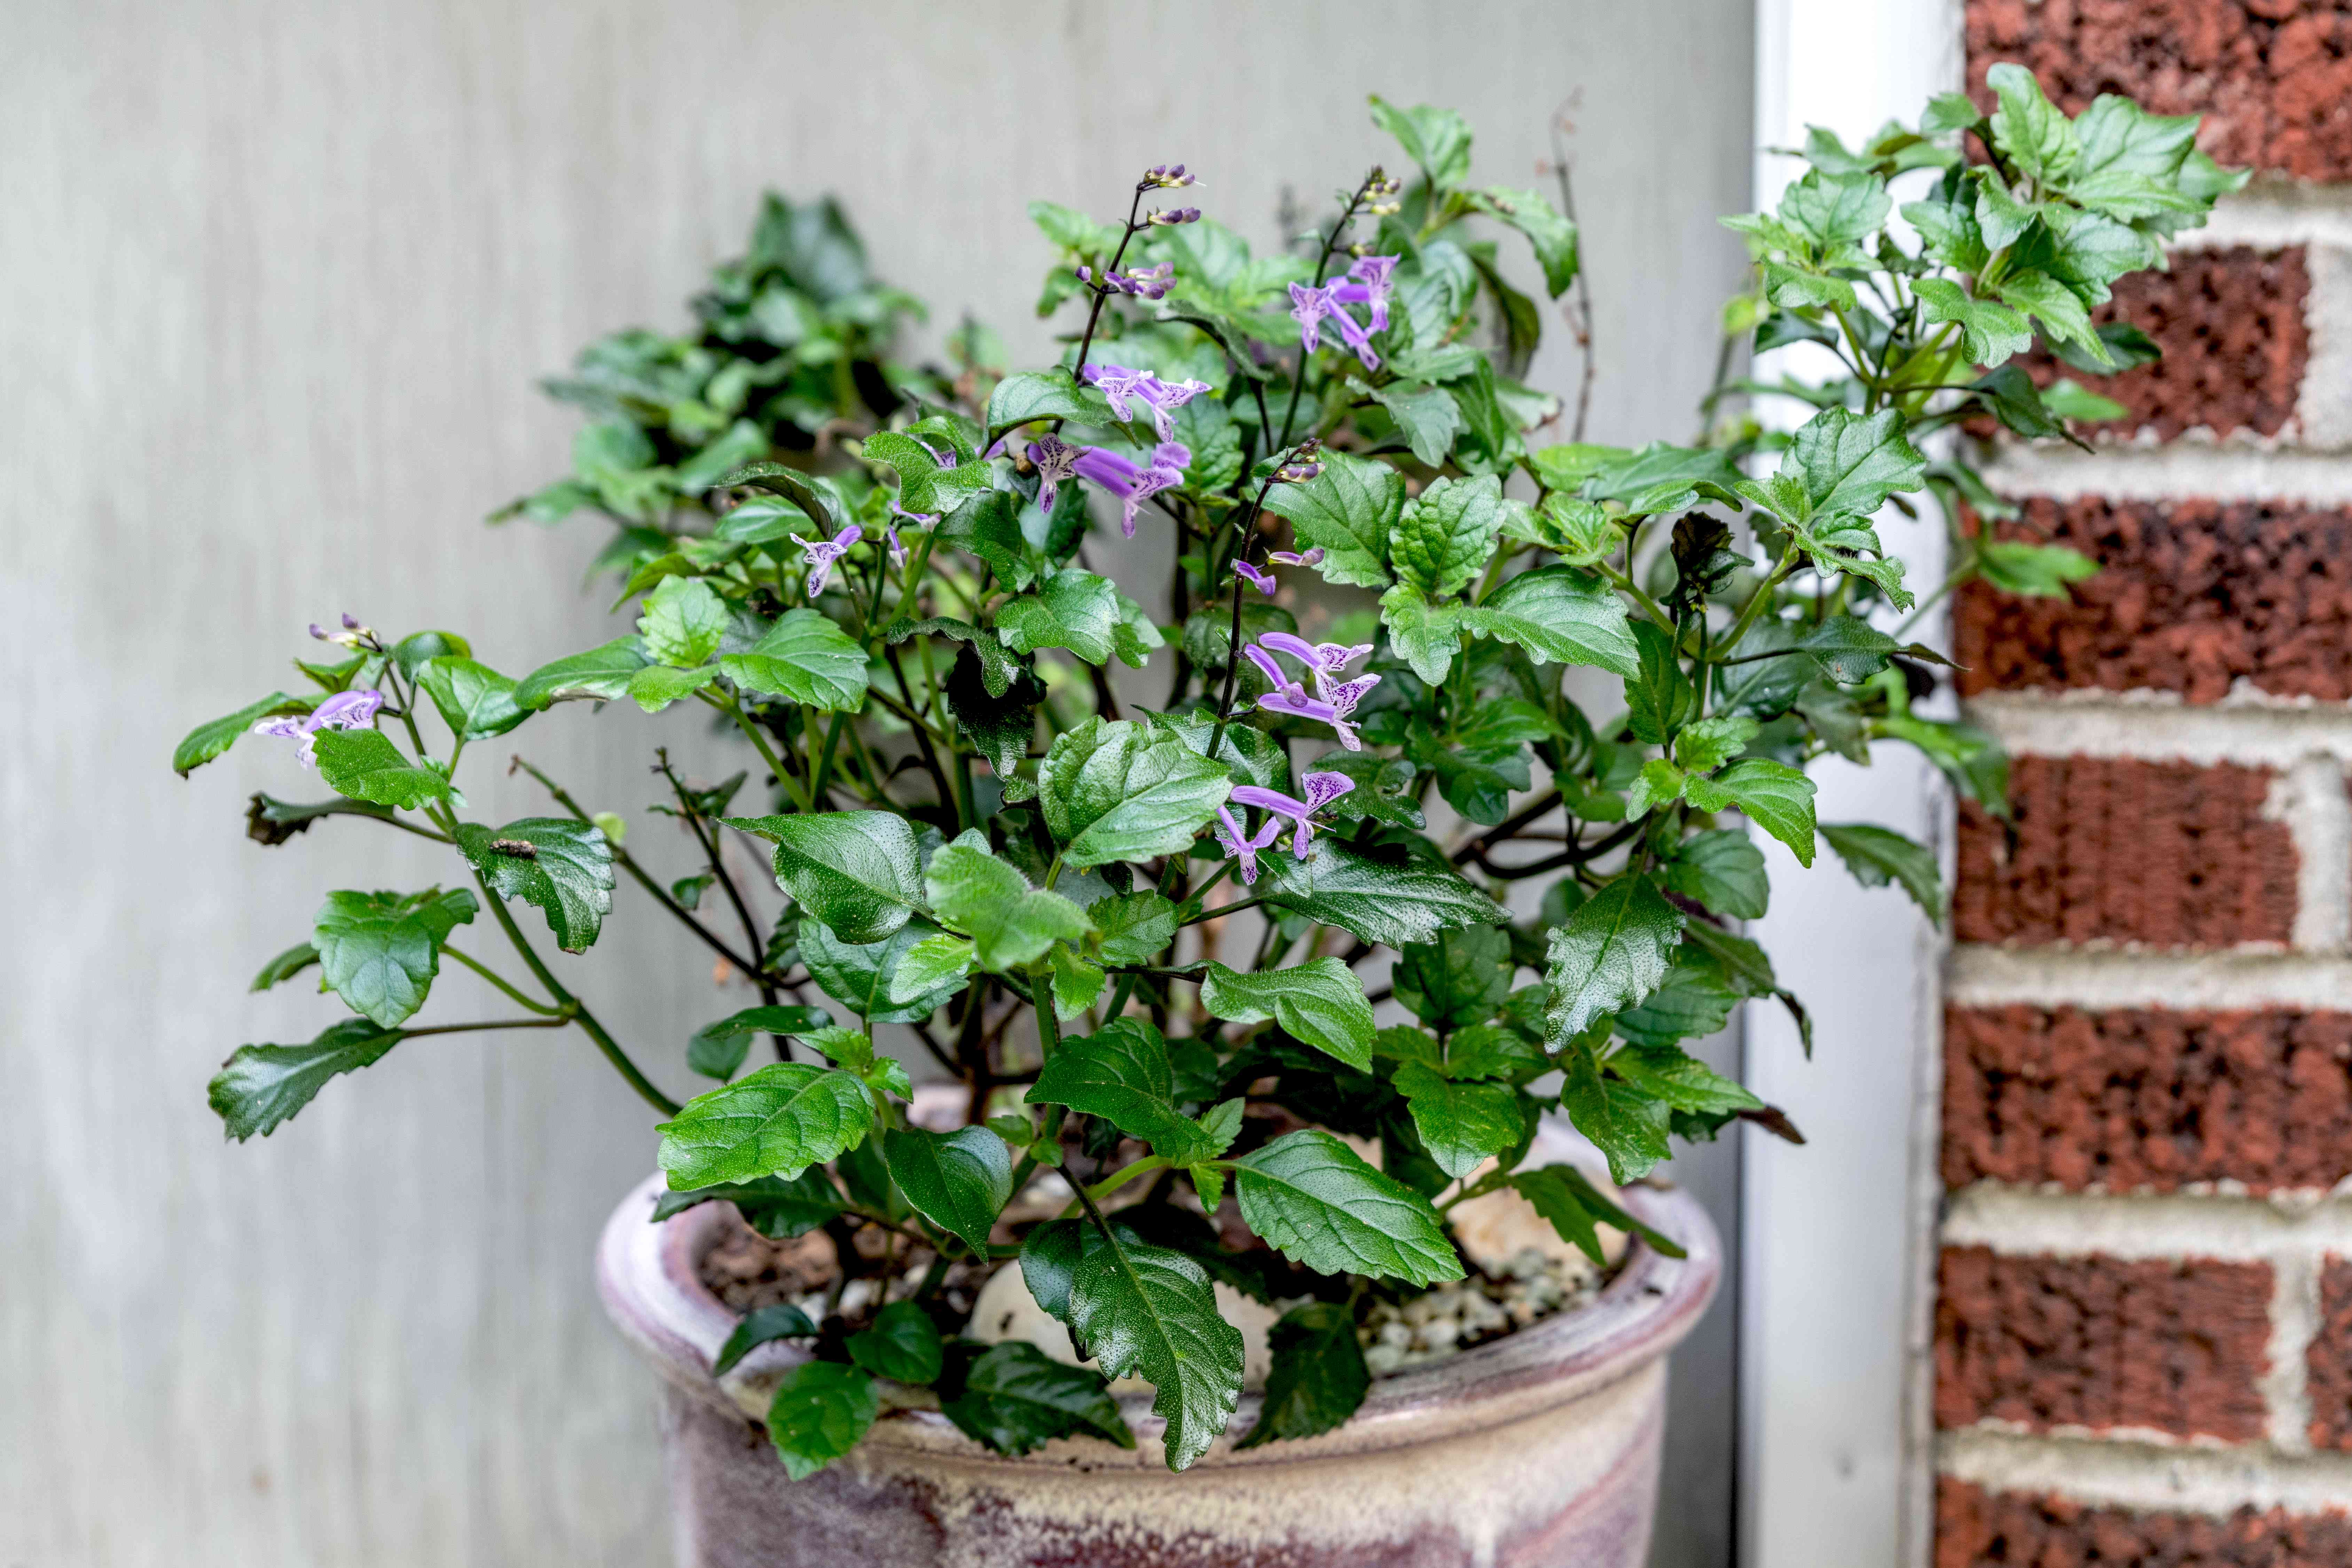 Mona lavender plant with small purple blossoms surrounded by mint-like leaves in outdoor pot